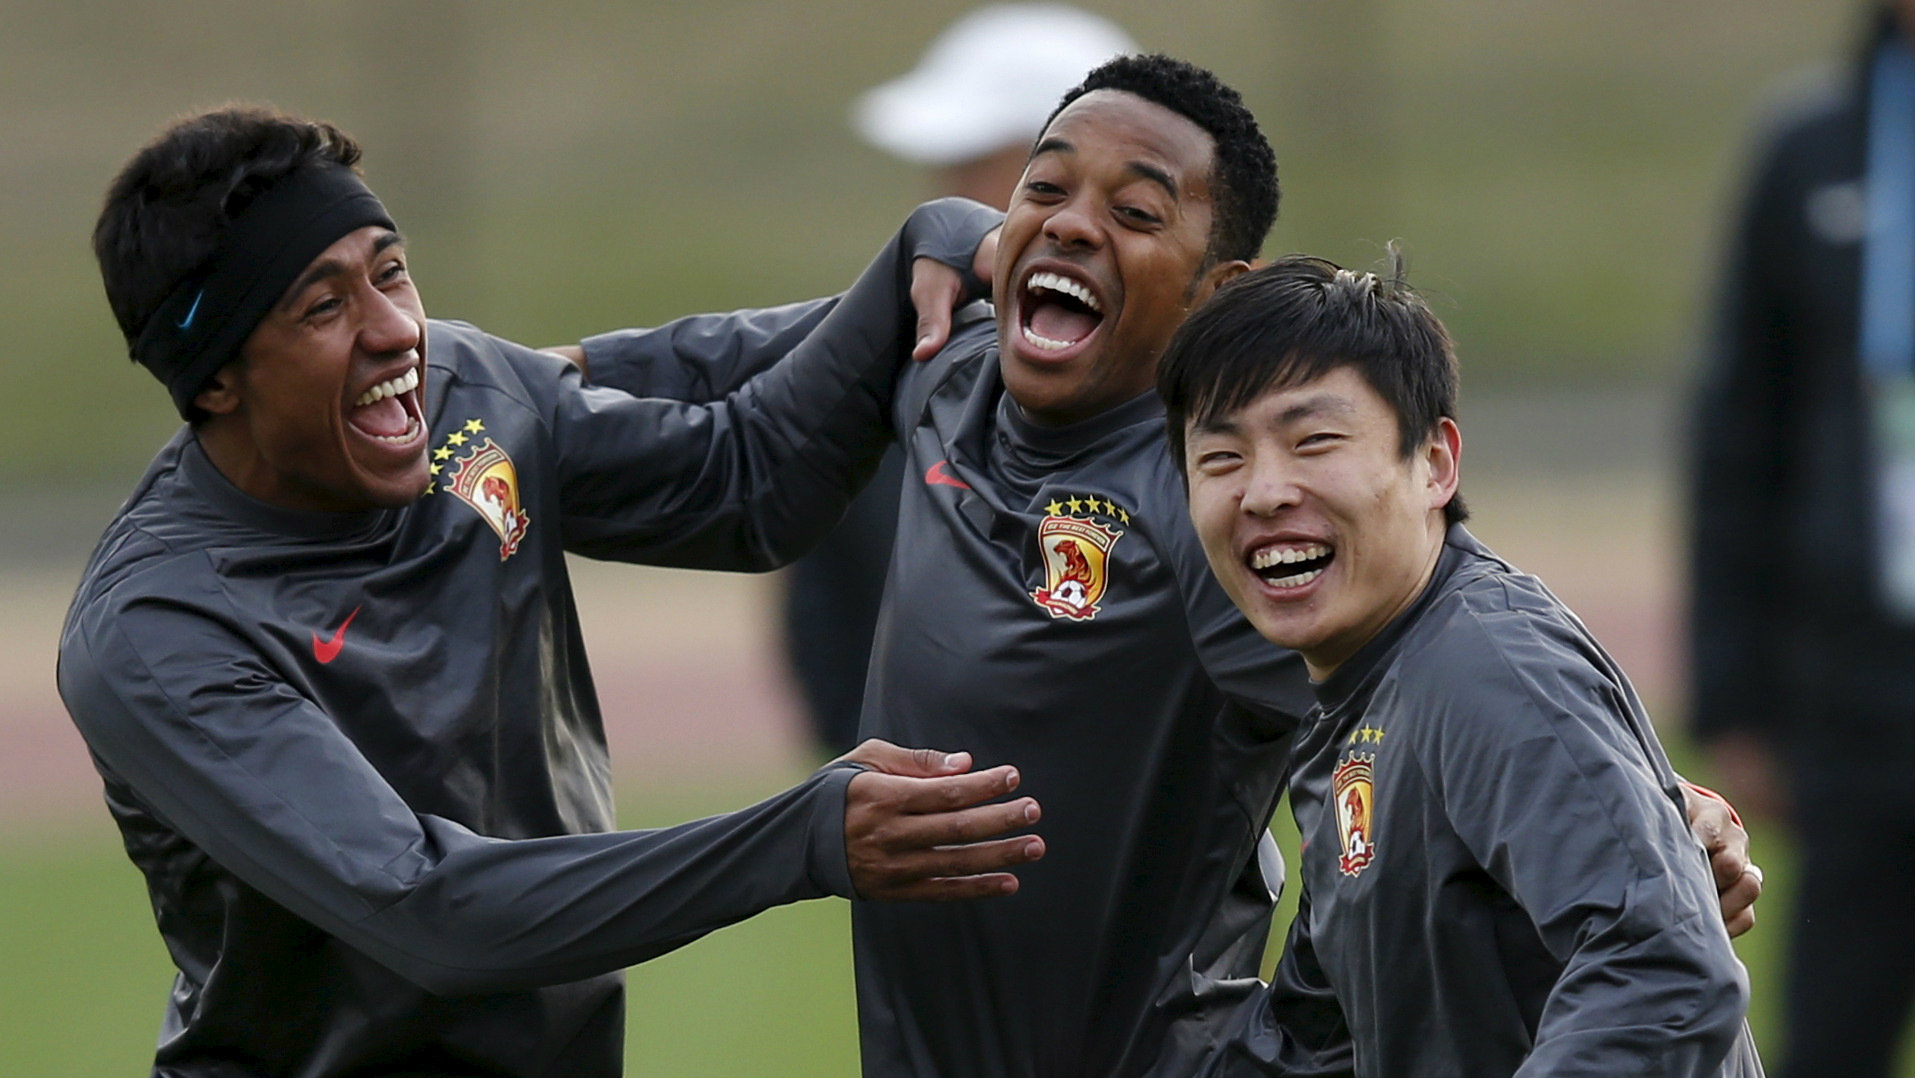 Guangzhou Evergrande's Paulinho, Robinho and Zheng Long (L-R) laugh during a training session ahead of their Club World Cup semi-final soccer match against Barcelona in Yokohama, south of Tokyo, Japan, December 15, 2015.